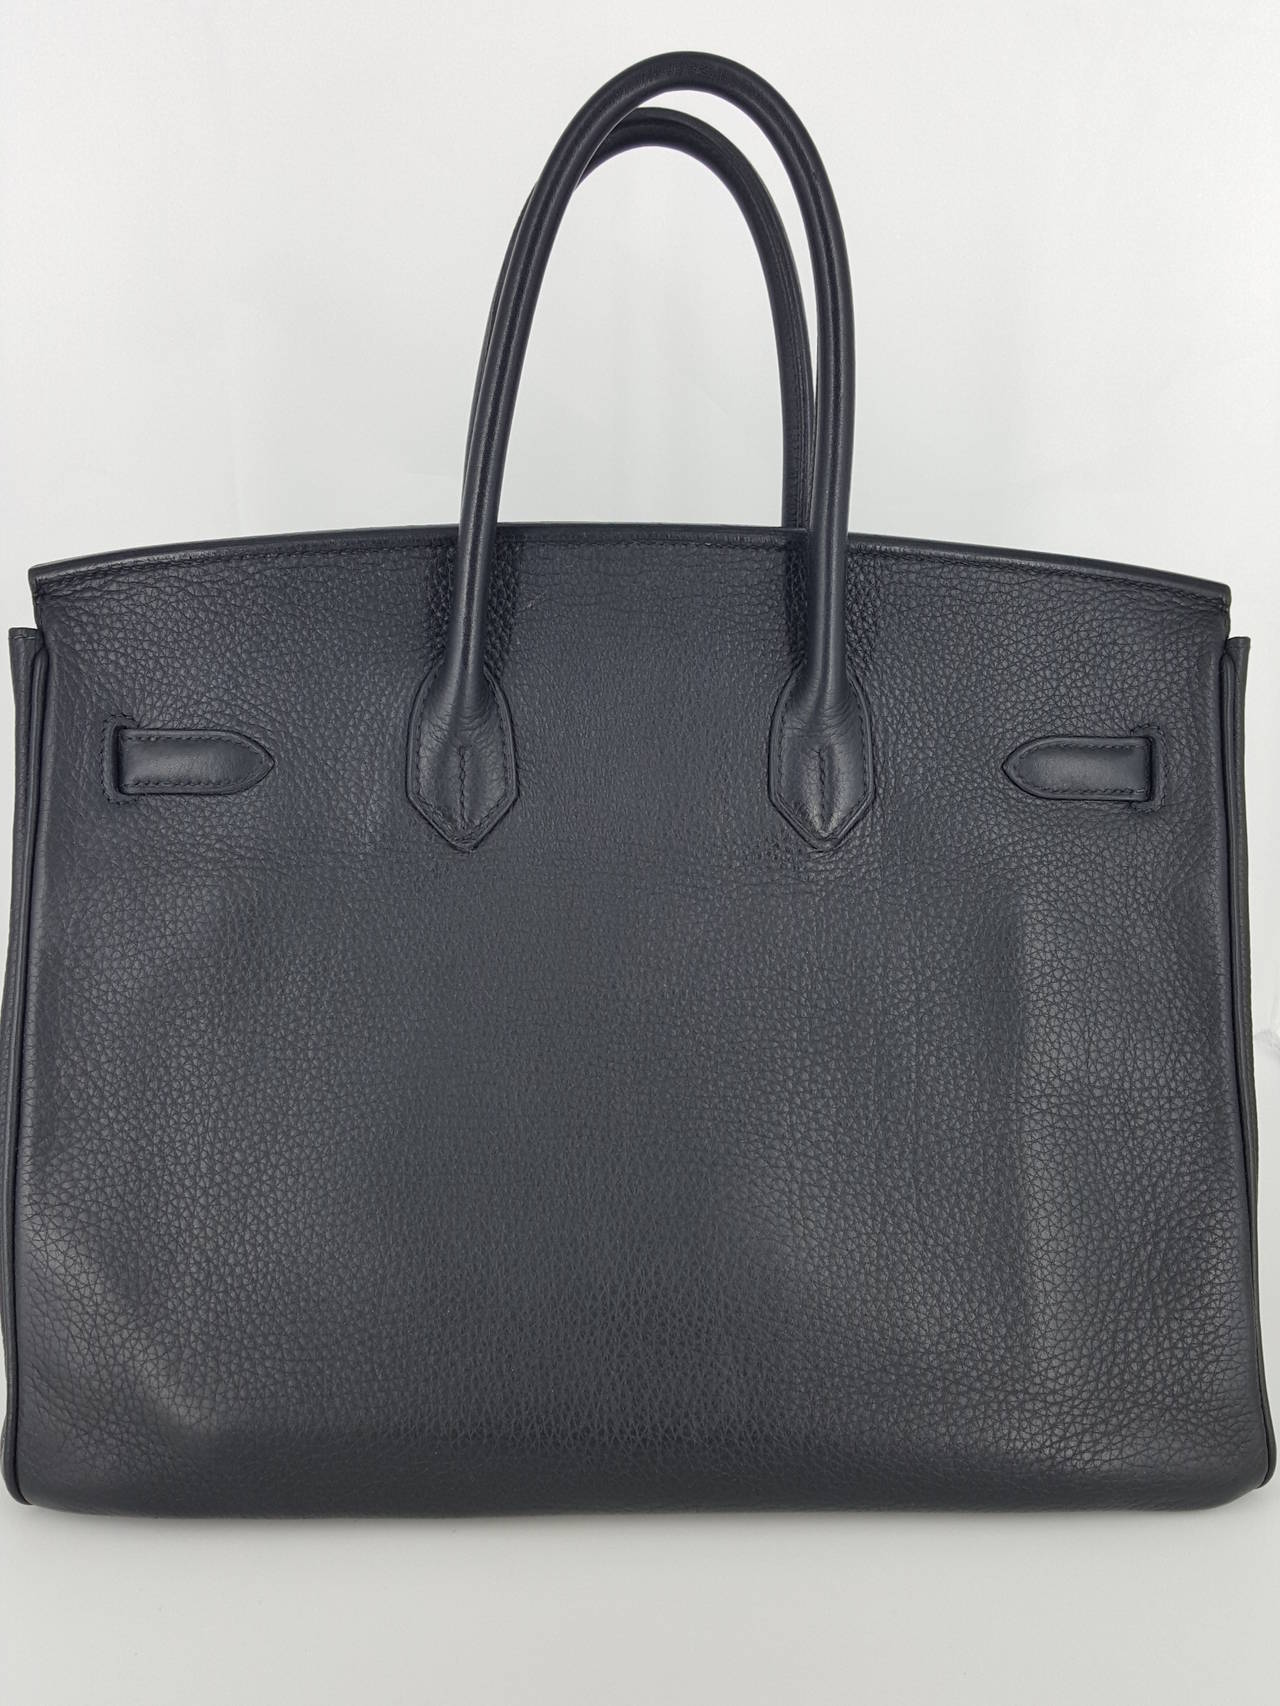 Offered for sale is a Beautiful Hermes Birkin which is 35 cm and handmade in Clemence leather and palladium hardware.  One of the worlds most sought after bags can now be yours.  This one is in very gently loved condition. The front hardware and